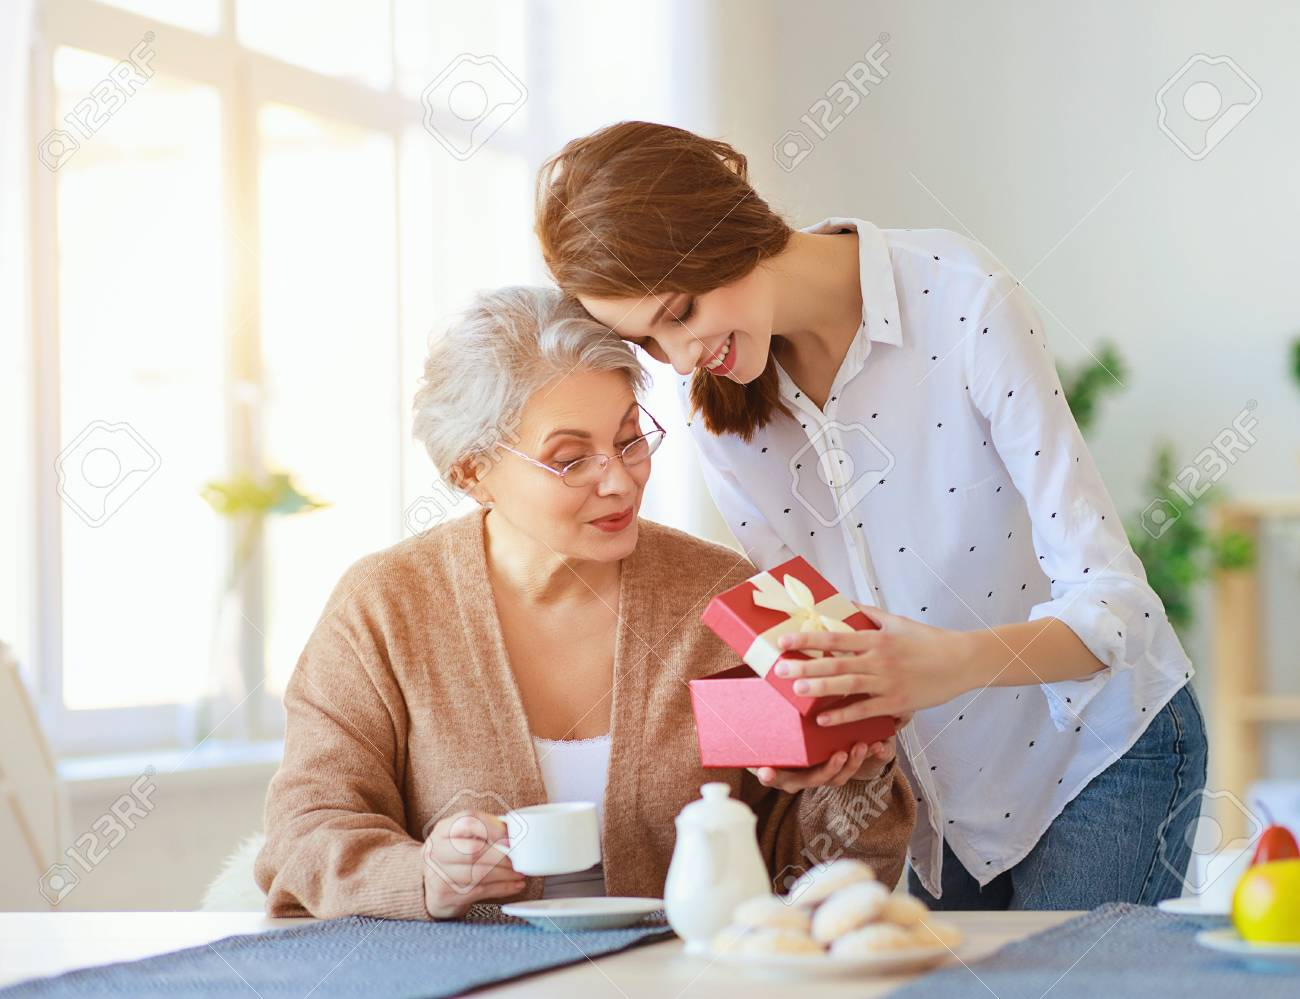 Happy mother's day! An adult daughter gives gift and congratulates an elderly mother on the holiday - 120401839